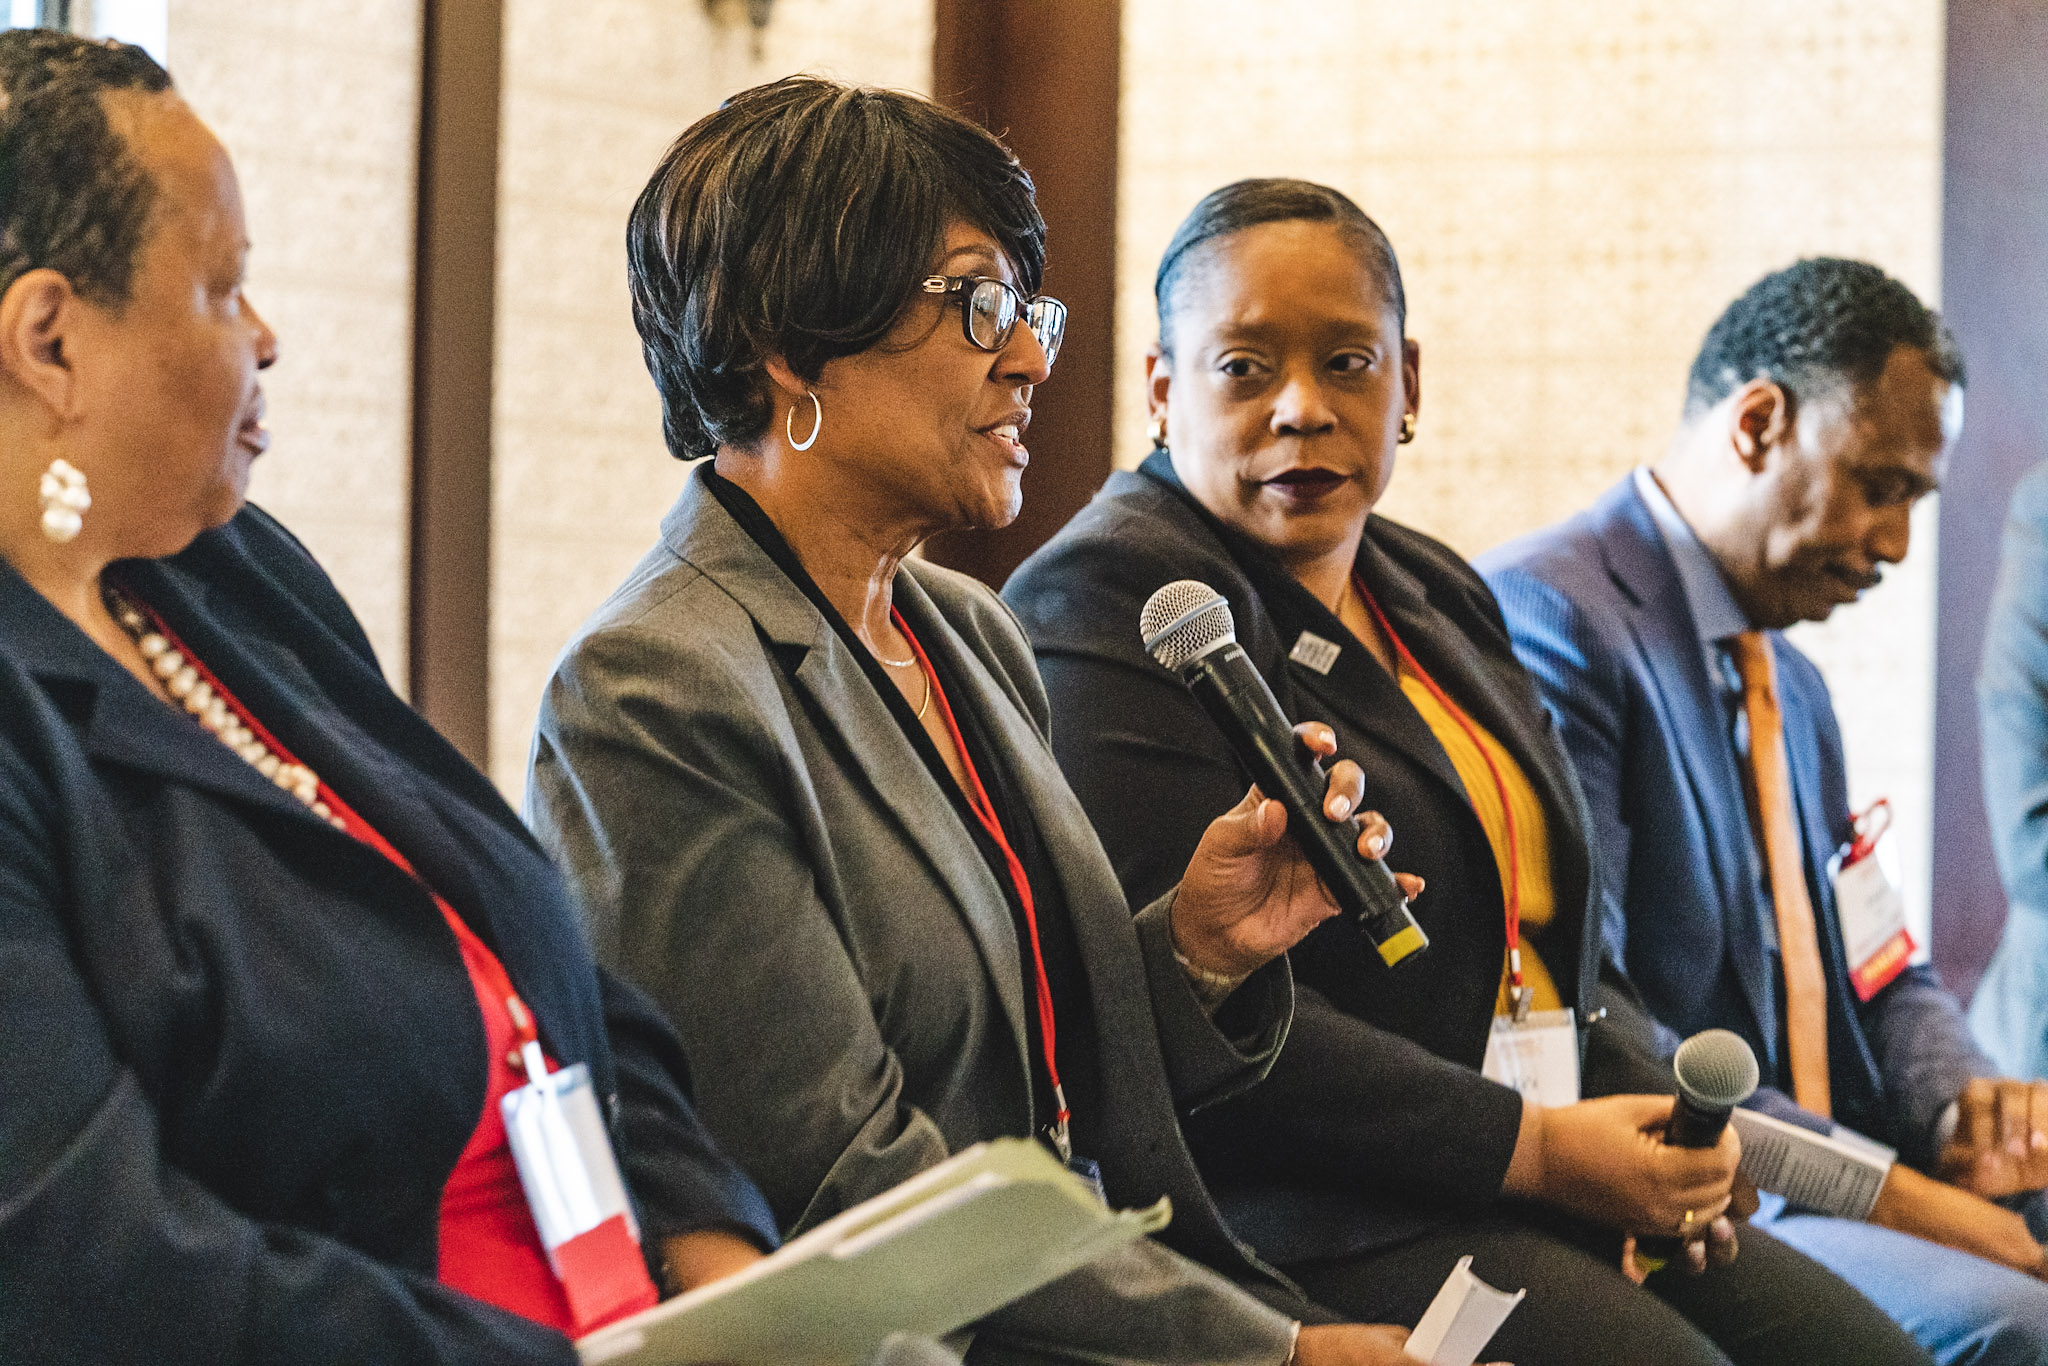 2019 Philadelphia Diversity & Inclusion Conference-107845-March 26, 2019105.jpg